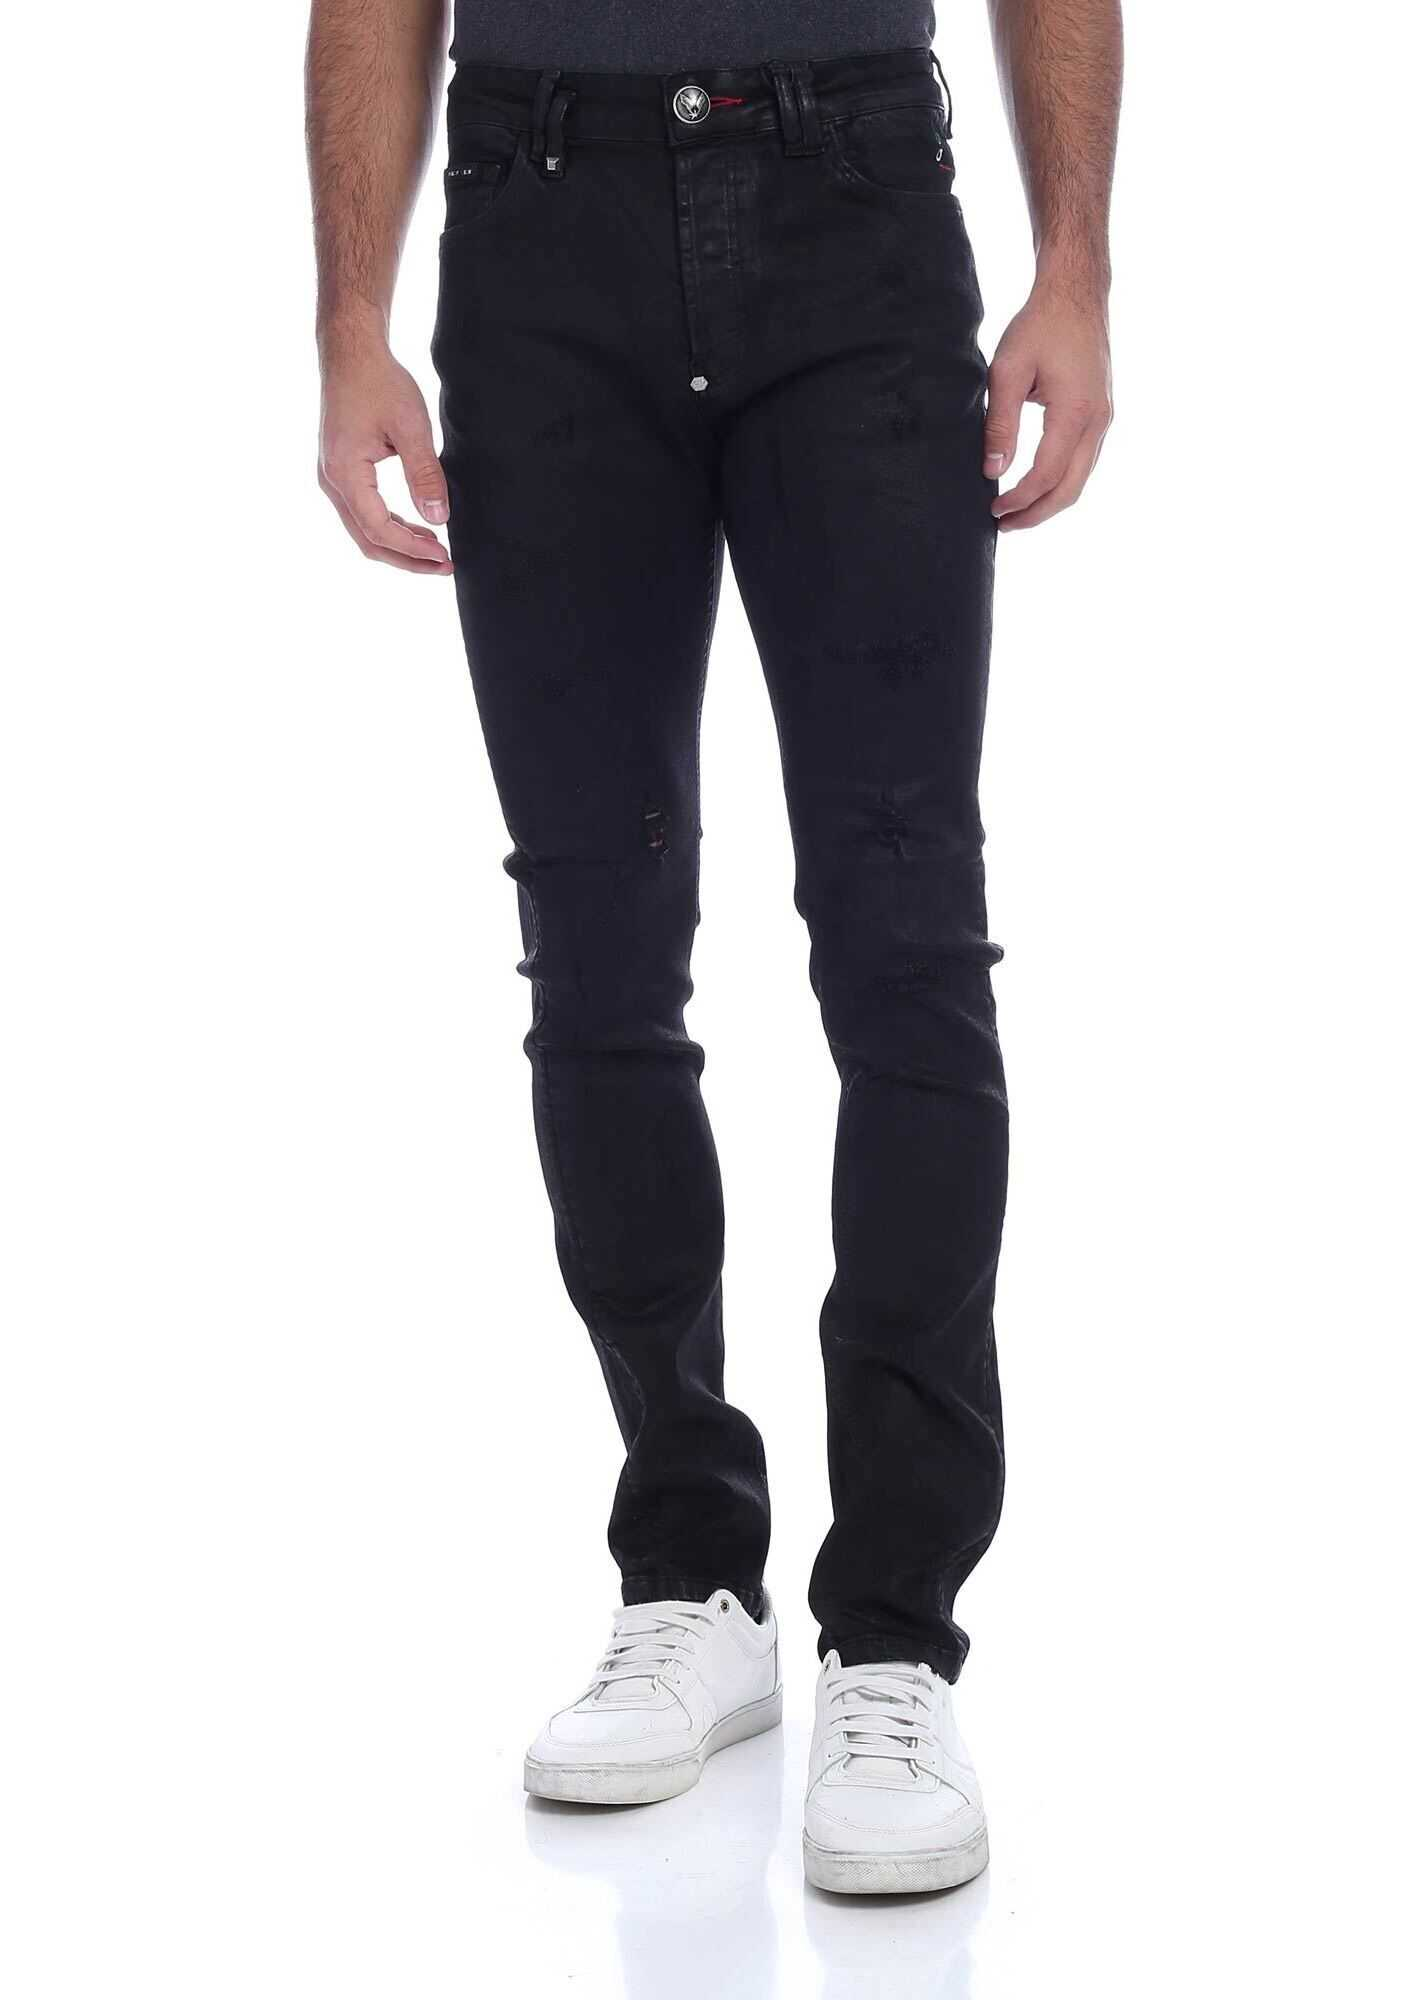 Philipp Plein Destroyed-Effect Jeans In Black Black